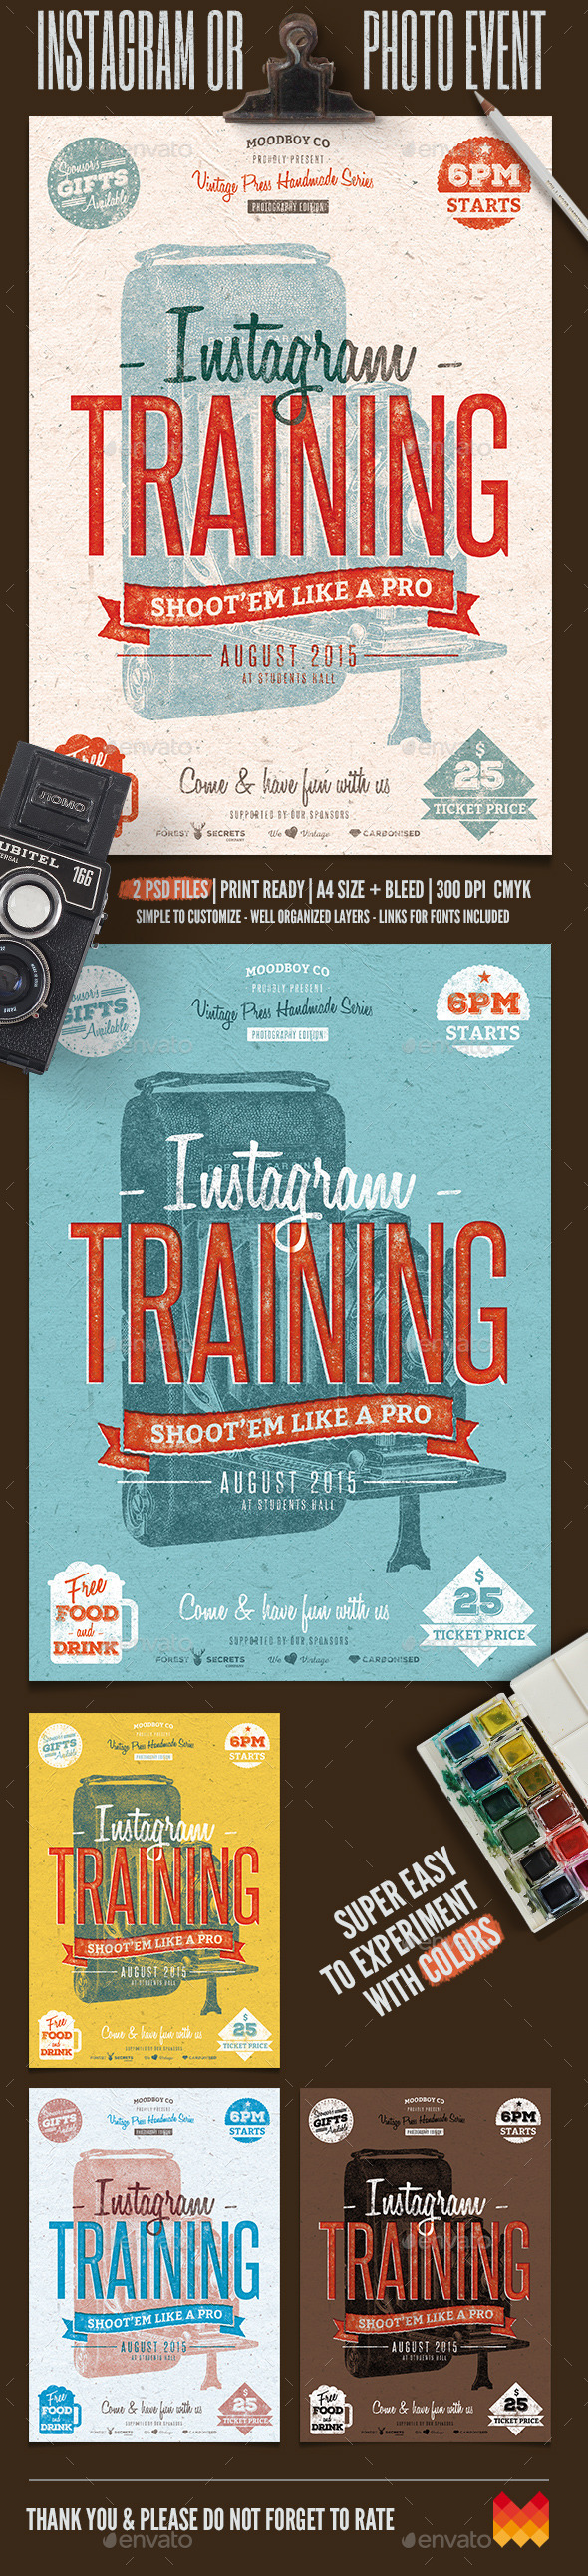 Instagram Photography Event Flyer/Poster - Flyers Print Templates